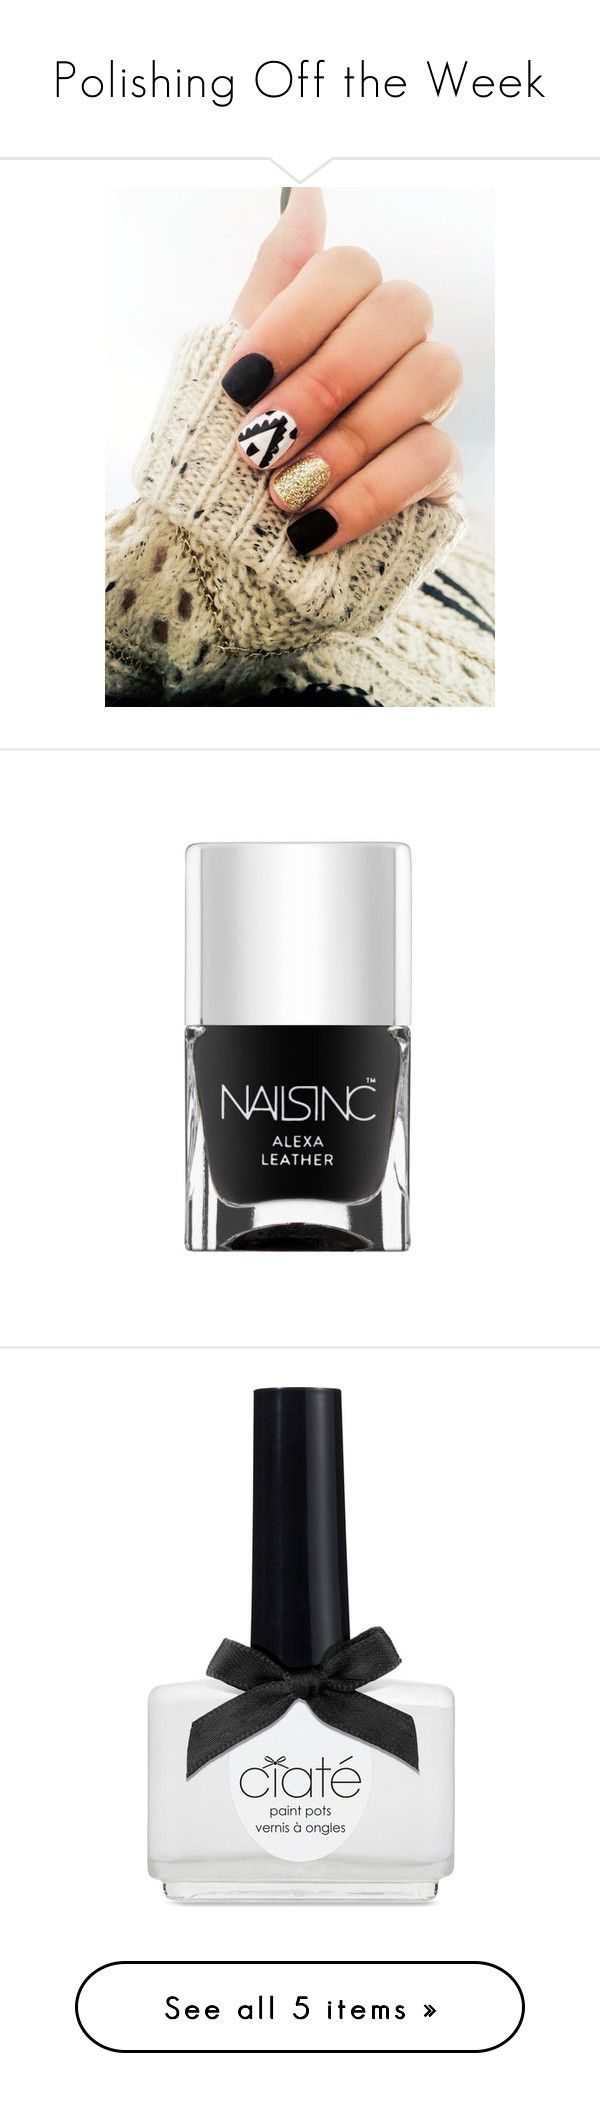 """Polishing Off the Week"" by polyvore-editorial ❤ liked on Polyvore featuring nailpolish, polishingofftheweek, newnownails, beauty products, nail care, nail polish, nails inc nail polish, nails inc., nails and ciate nail polish"